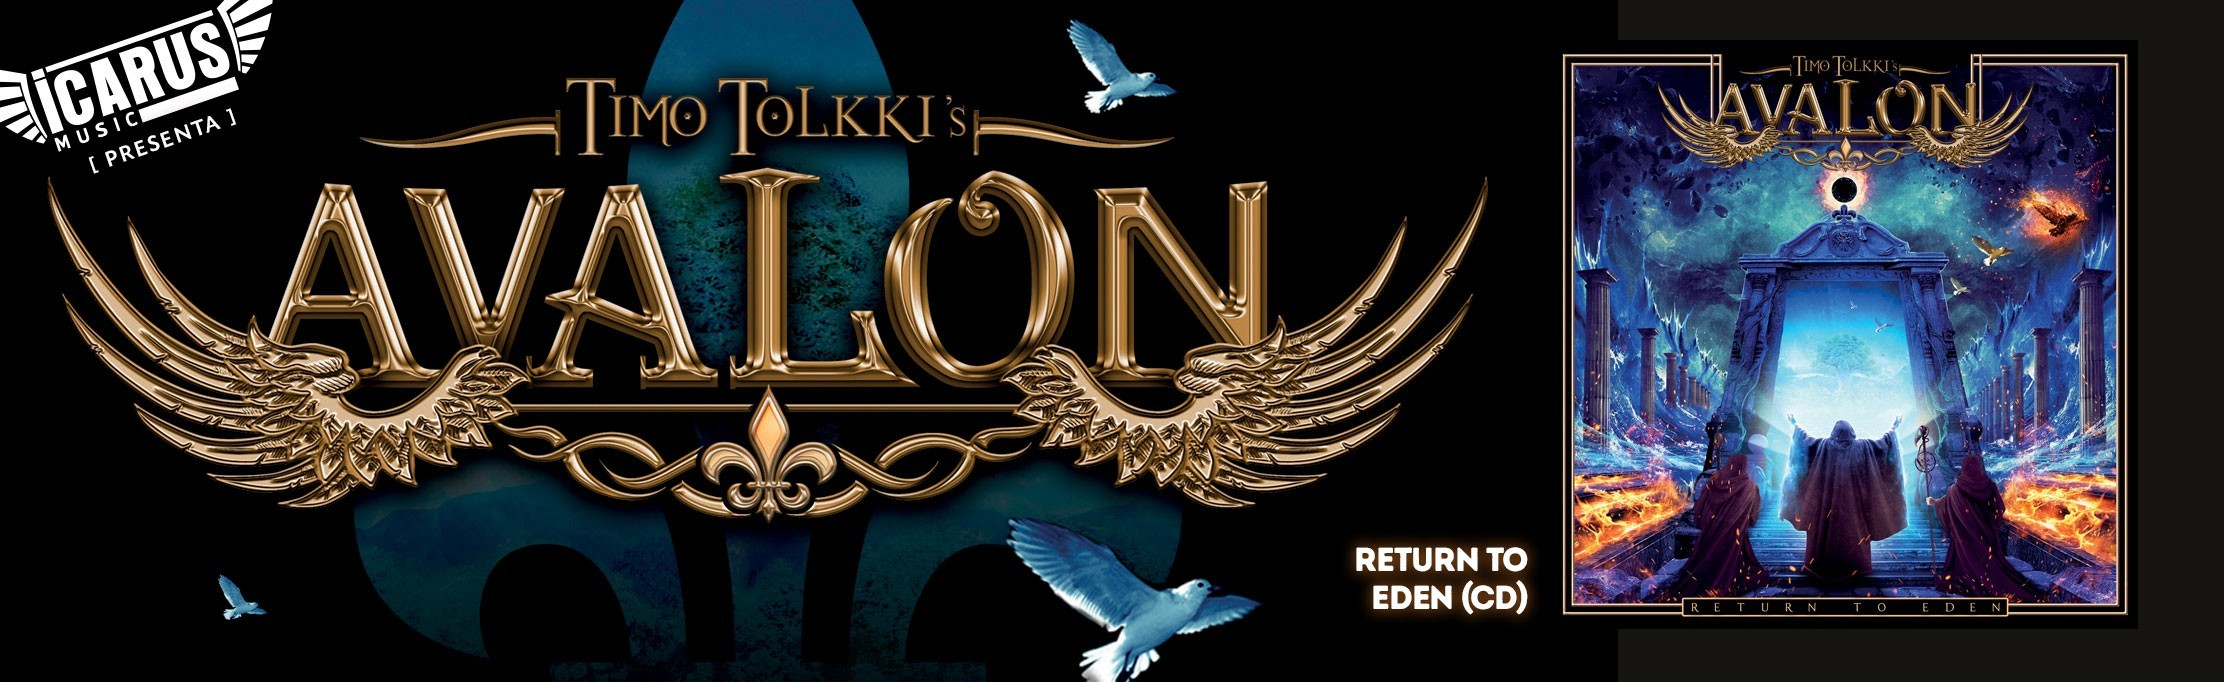 TIMO TOLKKI AVALON - Return to eden  - Cd